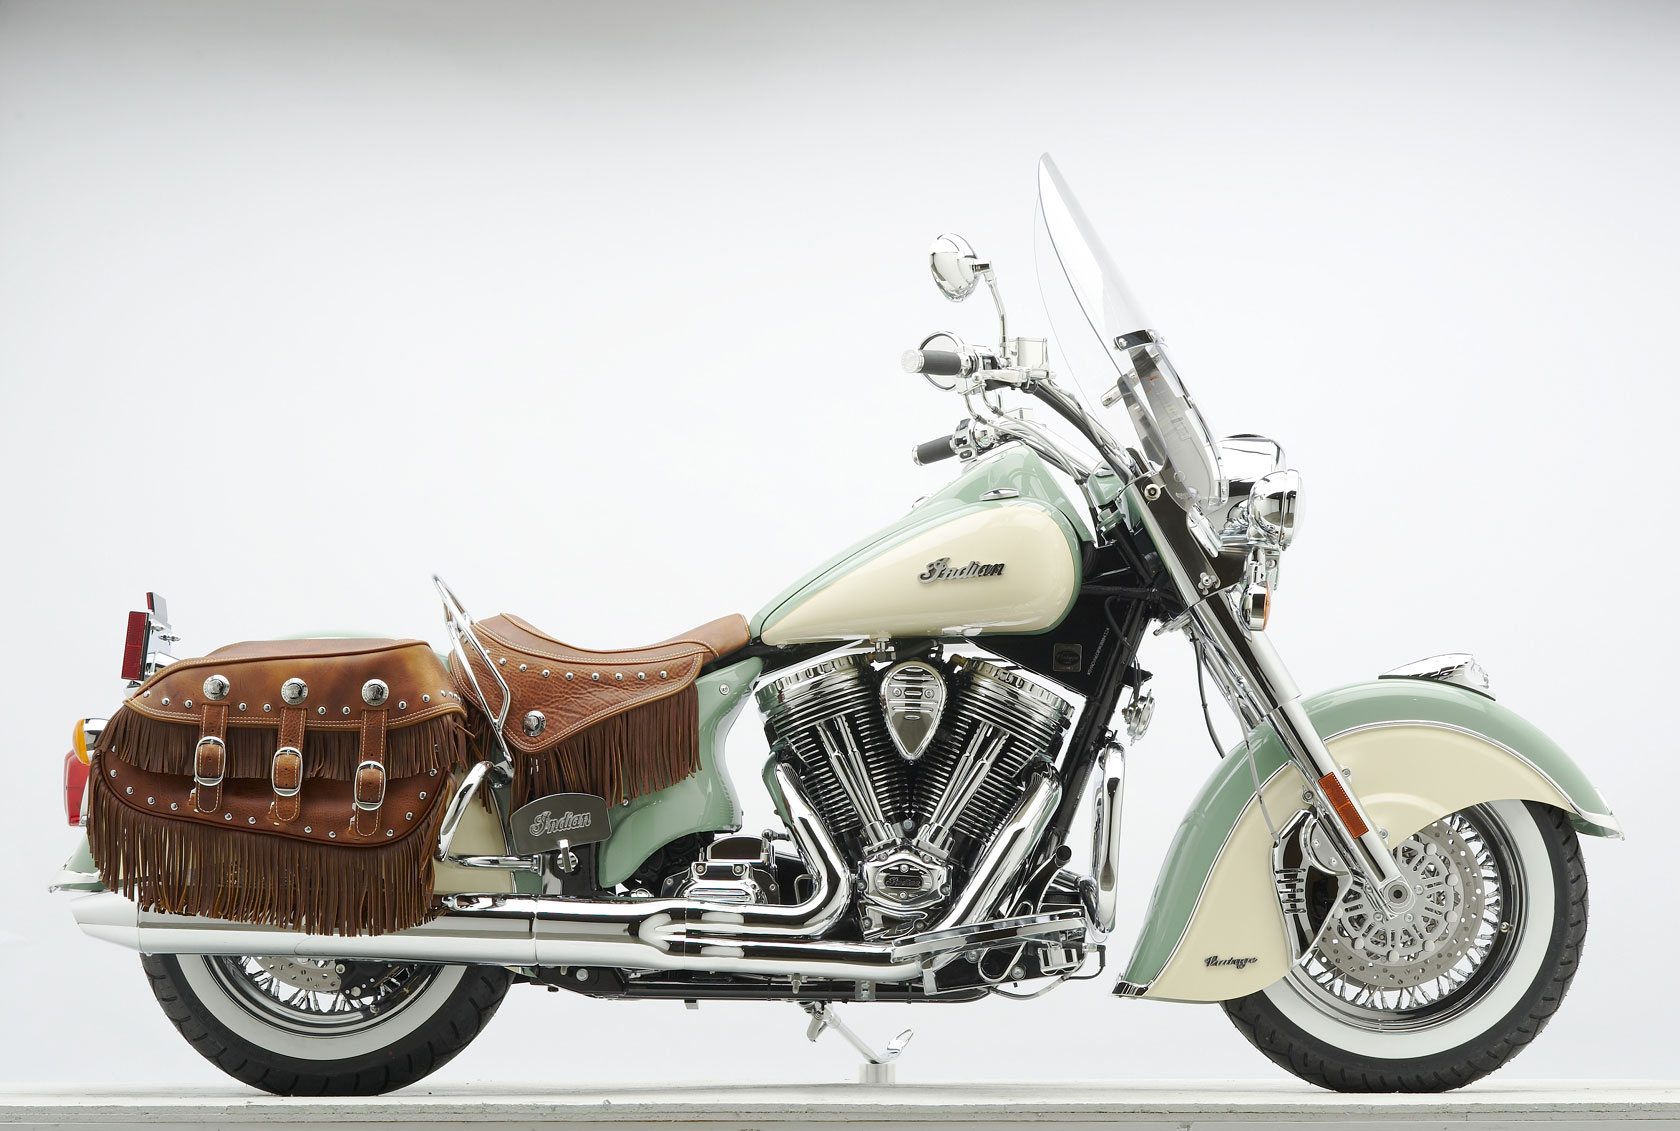 2010 Indian Chief Vintage G Wallpaper